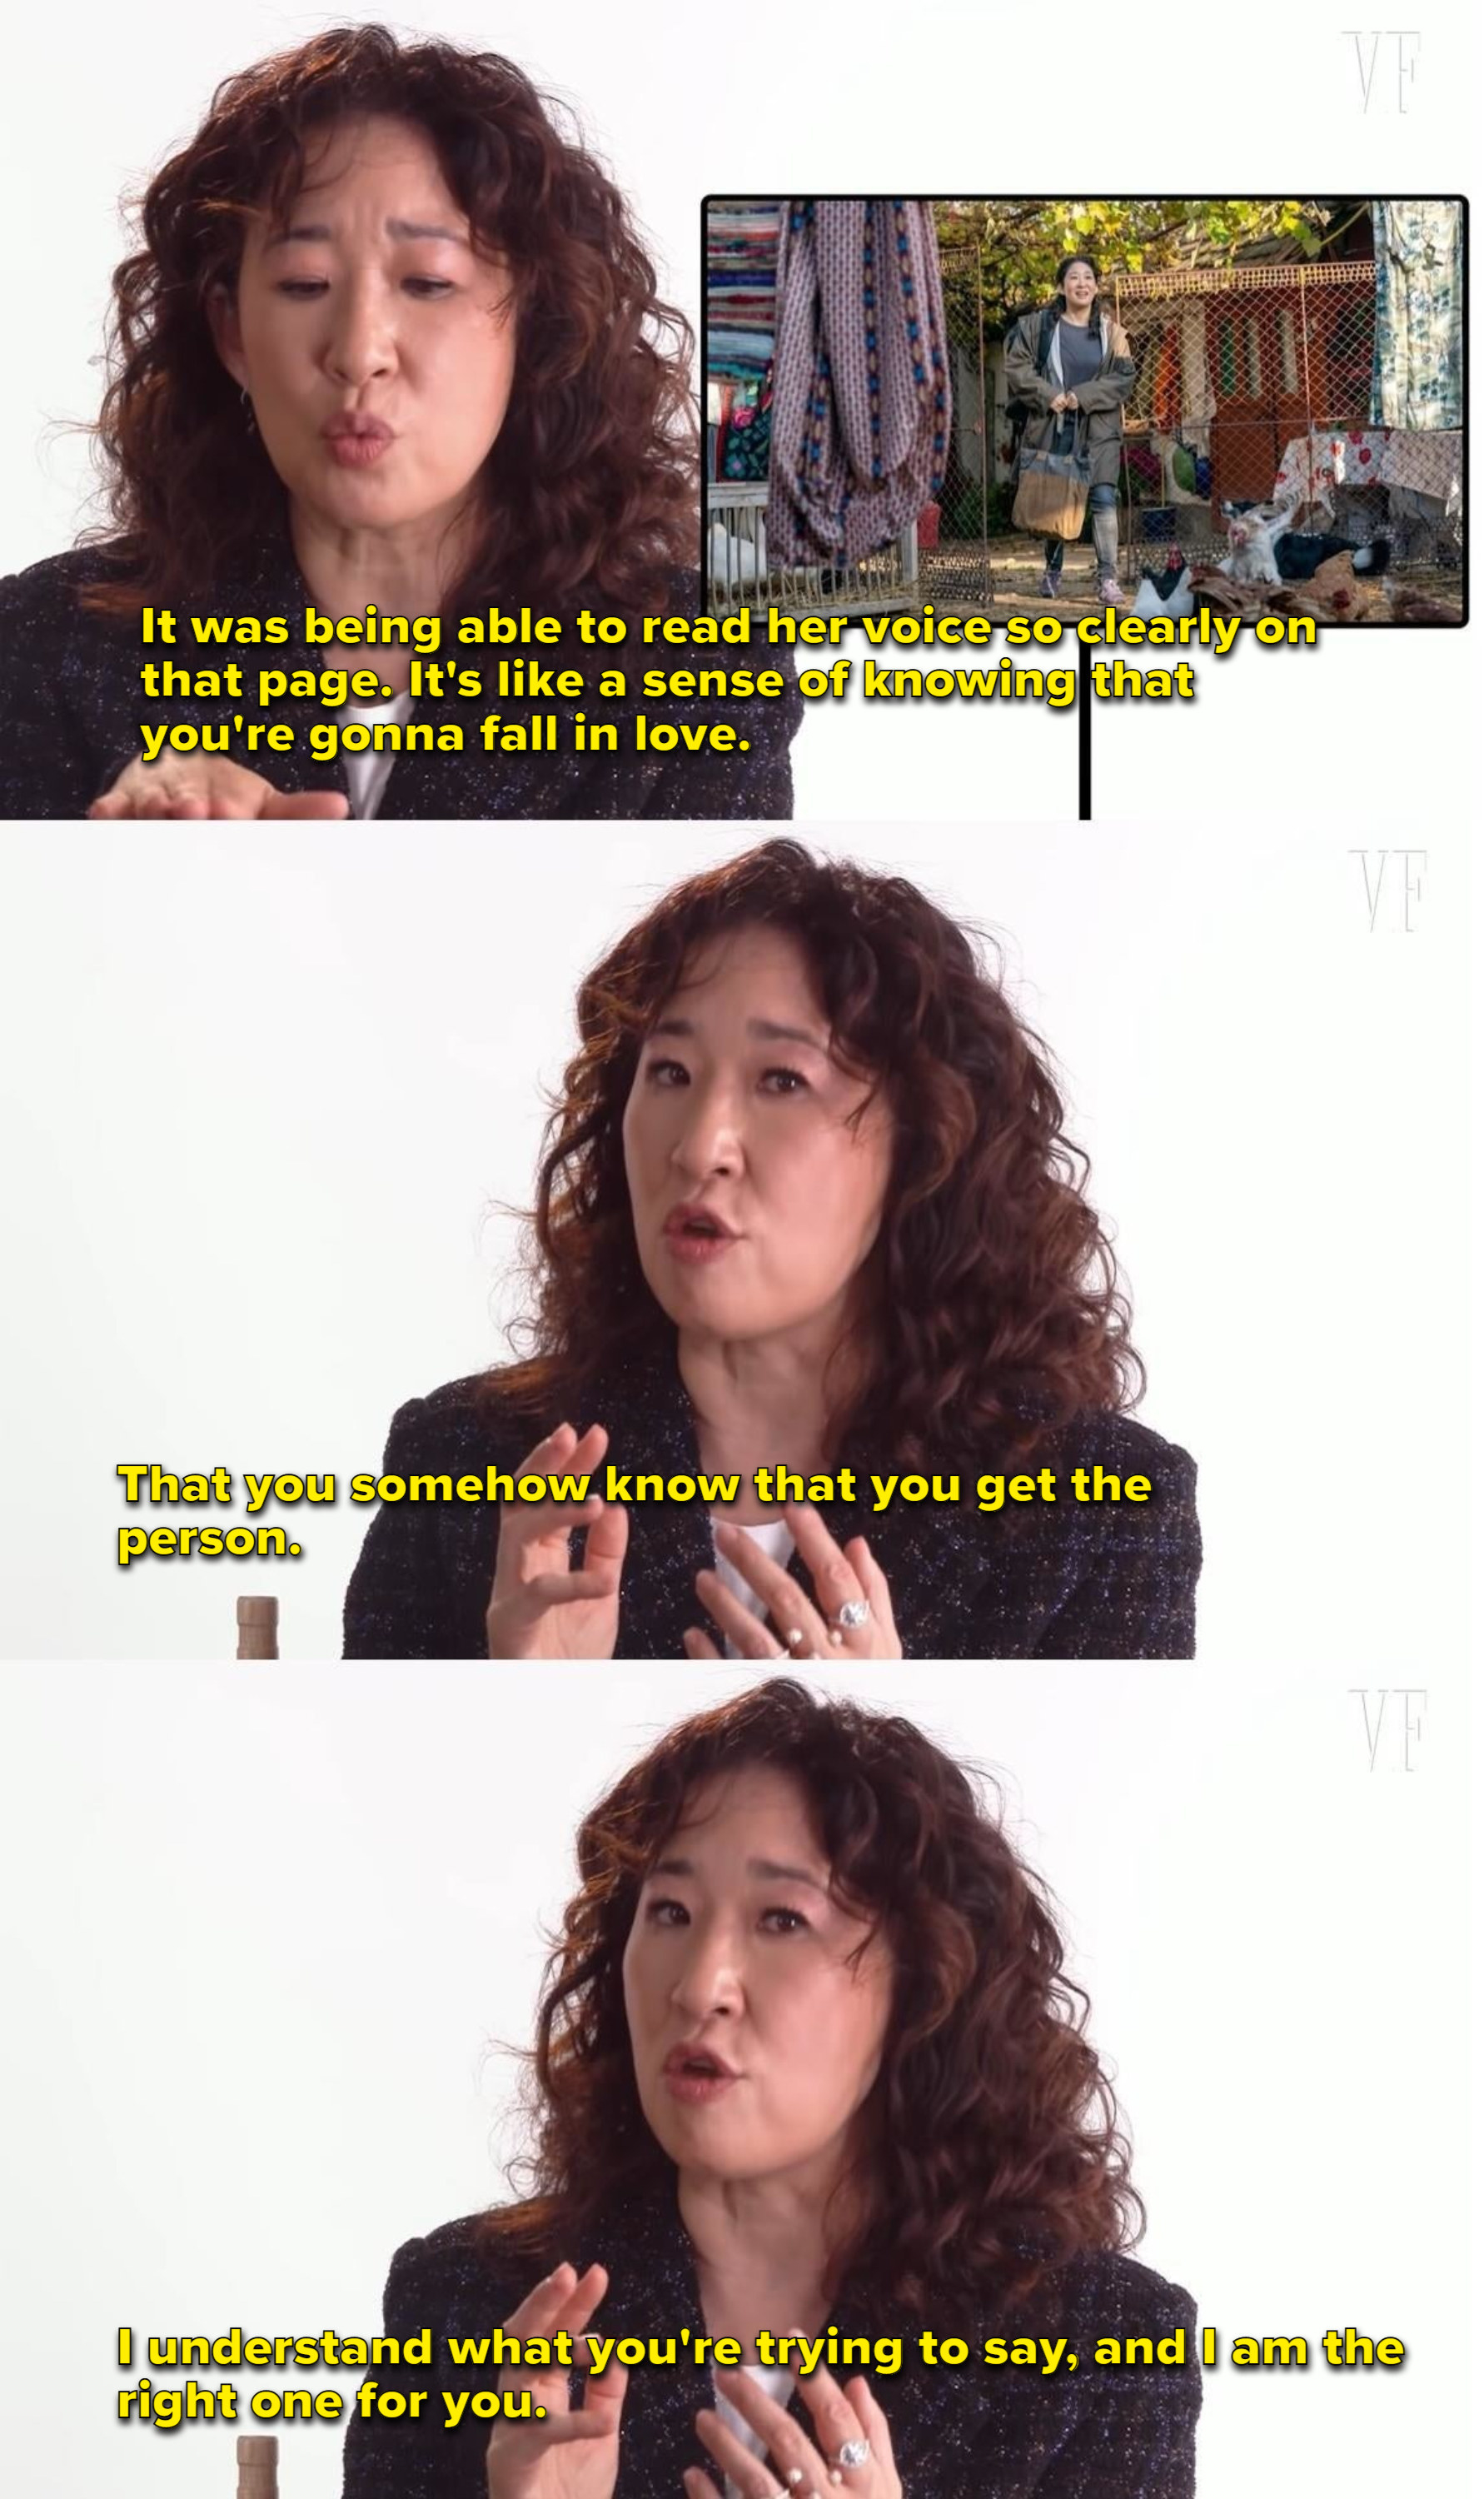 Sandra Oh talks about getting the Killing Eve script and how it was like getting the sense of falling in love